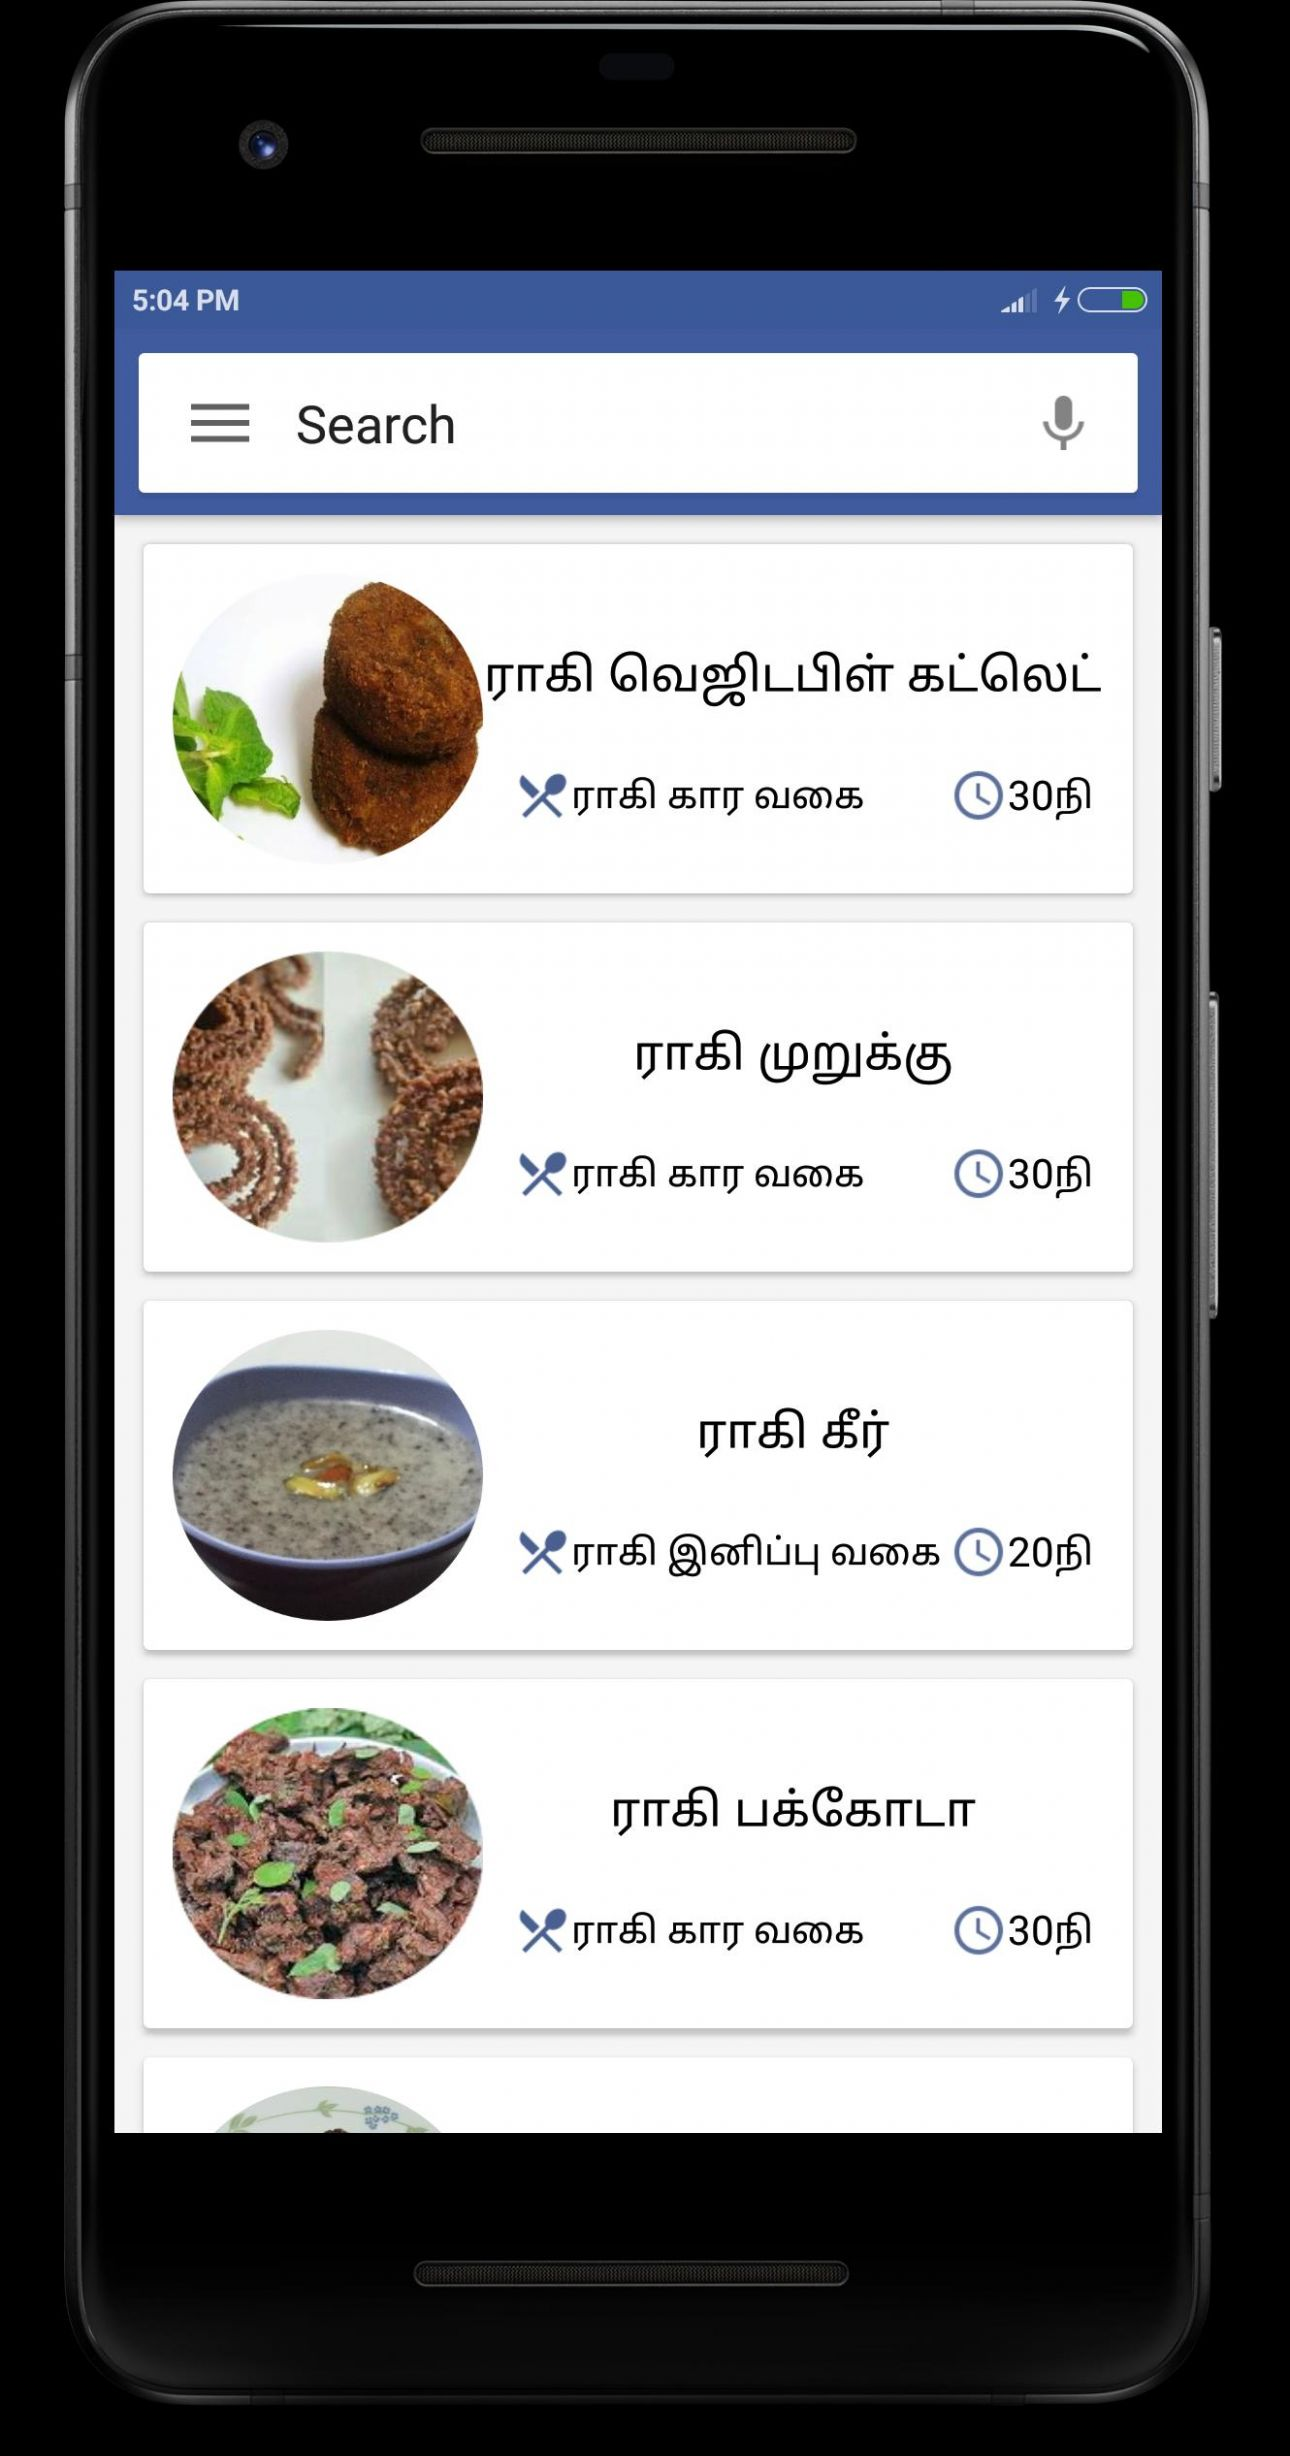 Ragi Recipes in Tamil for Android - APK Download